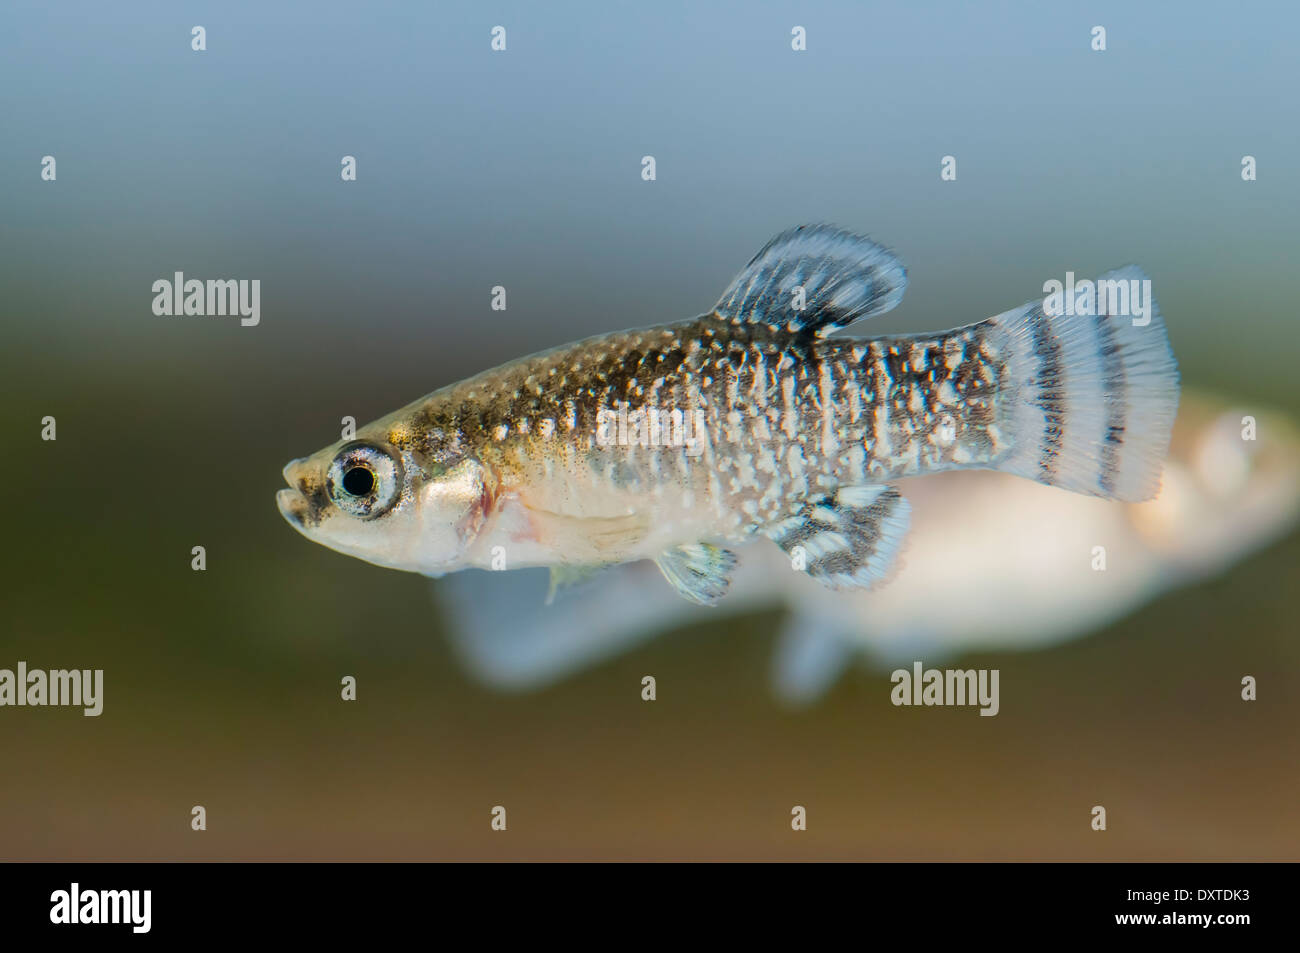 Male of Aphanius iberus, a mosquito larvivorous fish species presently endangered in the Mediterranean since the introduction of the American mosquitofish (Gambusia spp.) in early XXth century, which harms the autochtonous species. - Stock Image